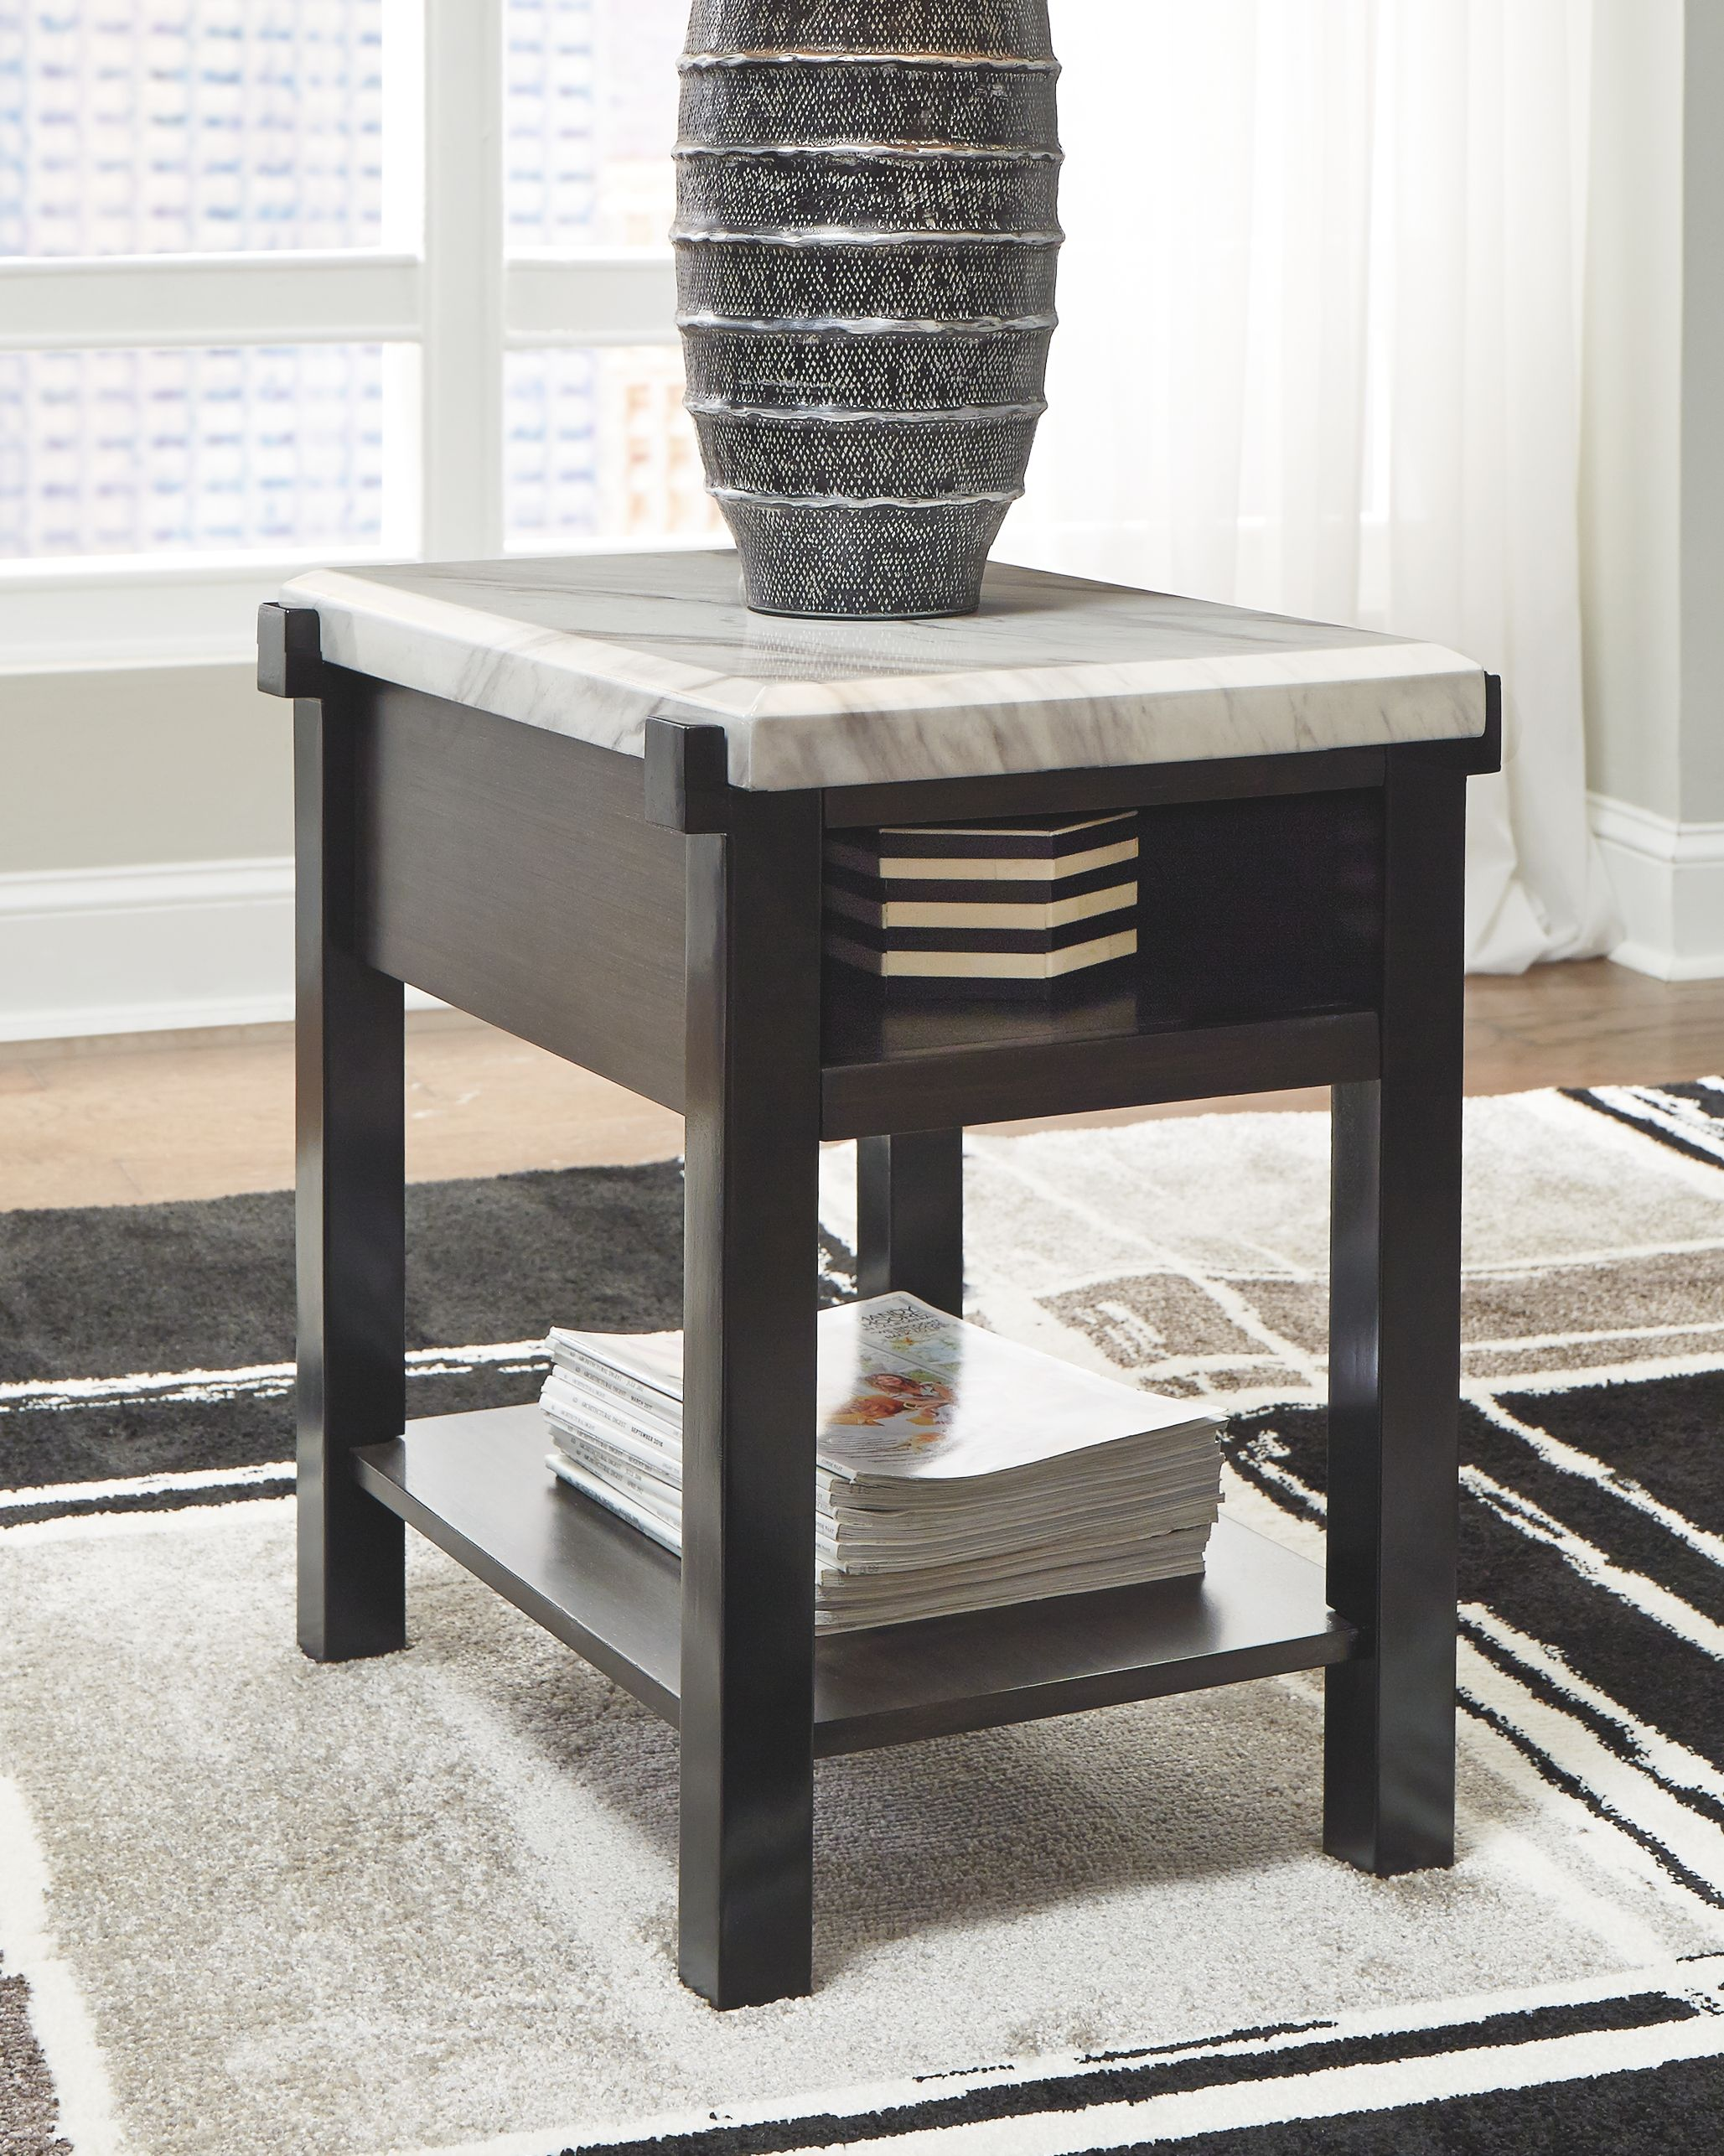 Janilly Chairside End Table Ashley Furniture Homestore In 2021 End Tables Ashley Furniture Ashley Furniture Homestore